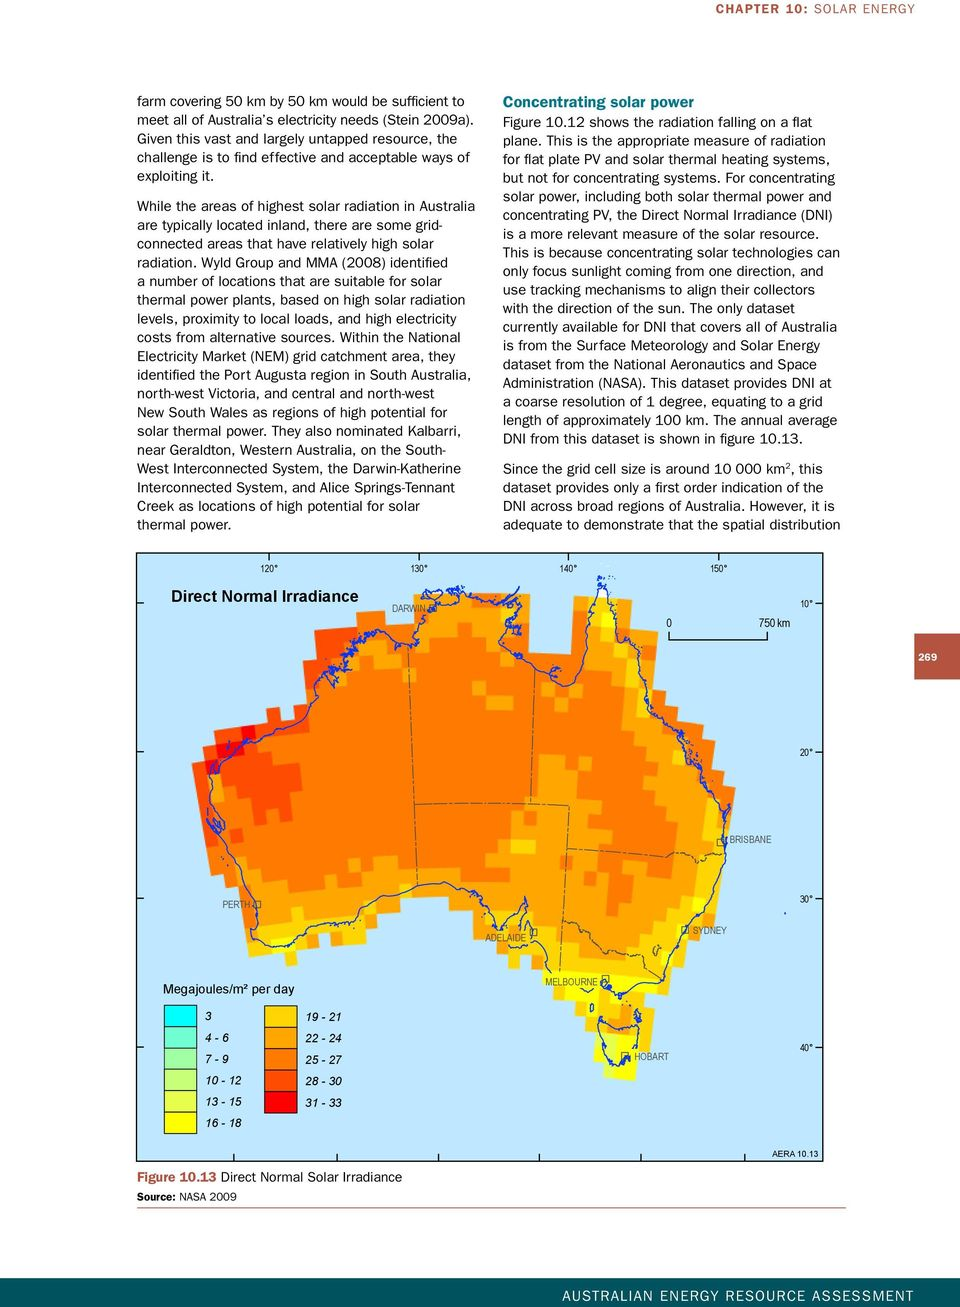 While the areas of highest solar radiation in Australia are typically located inland, there are some gridconnected areas that have relatively high solar radiation.